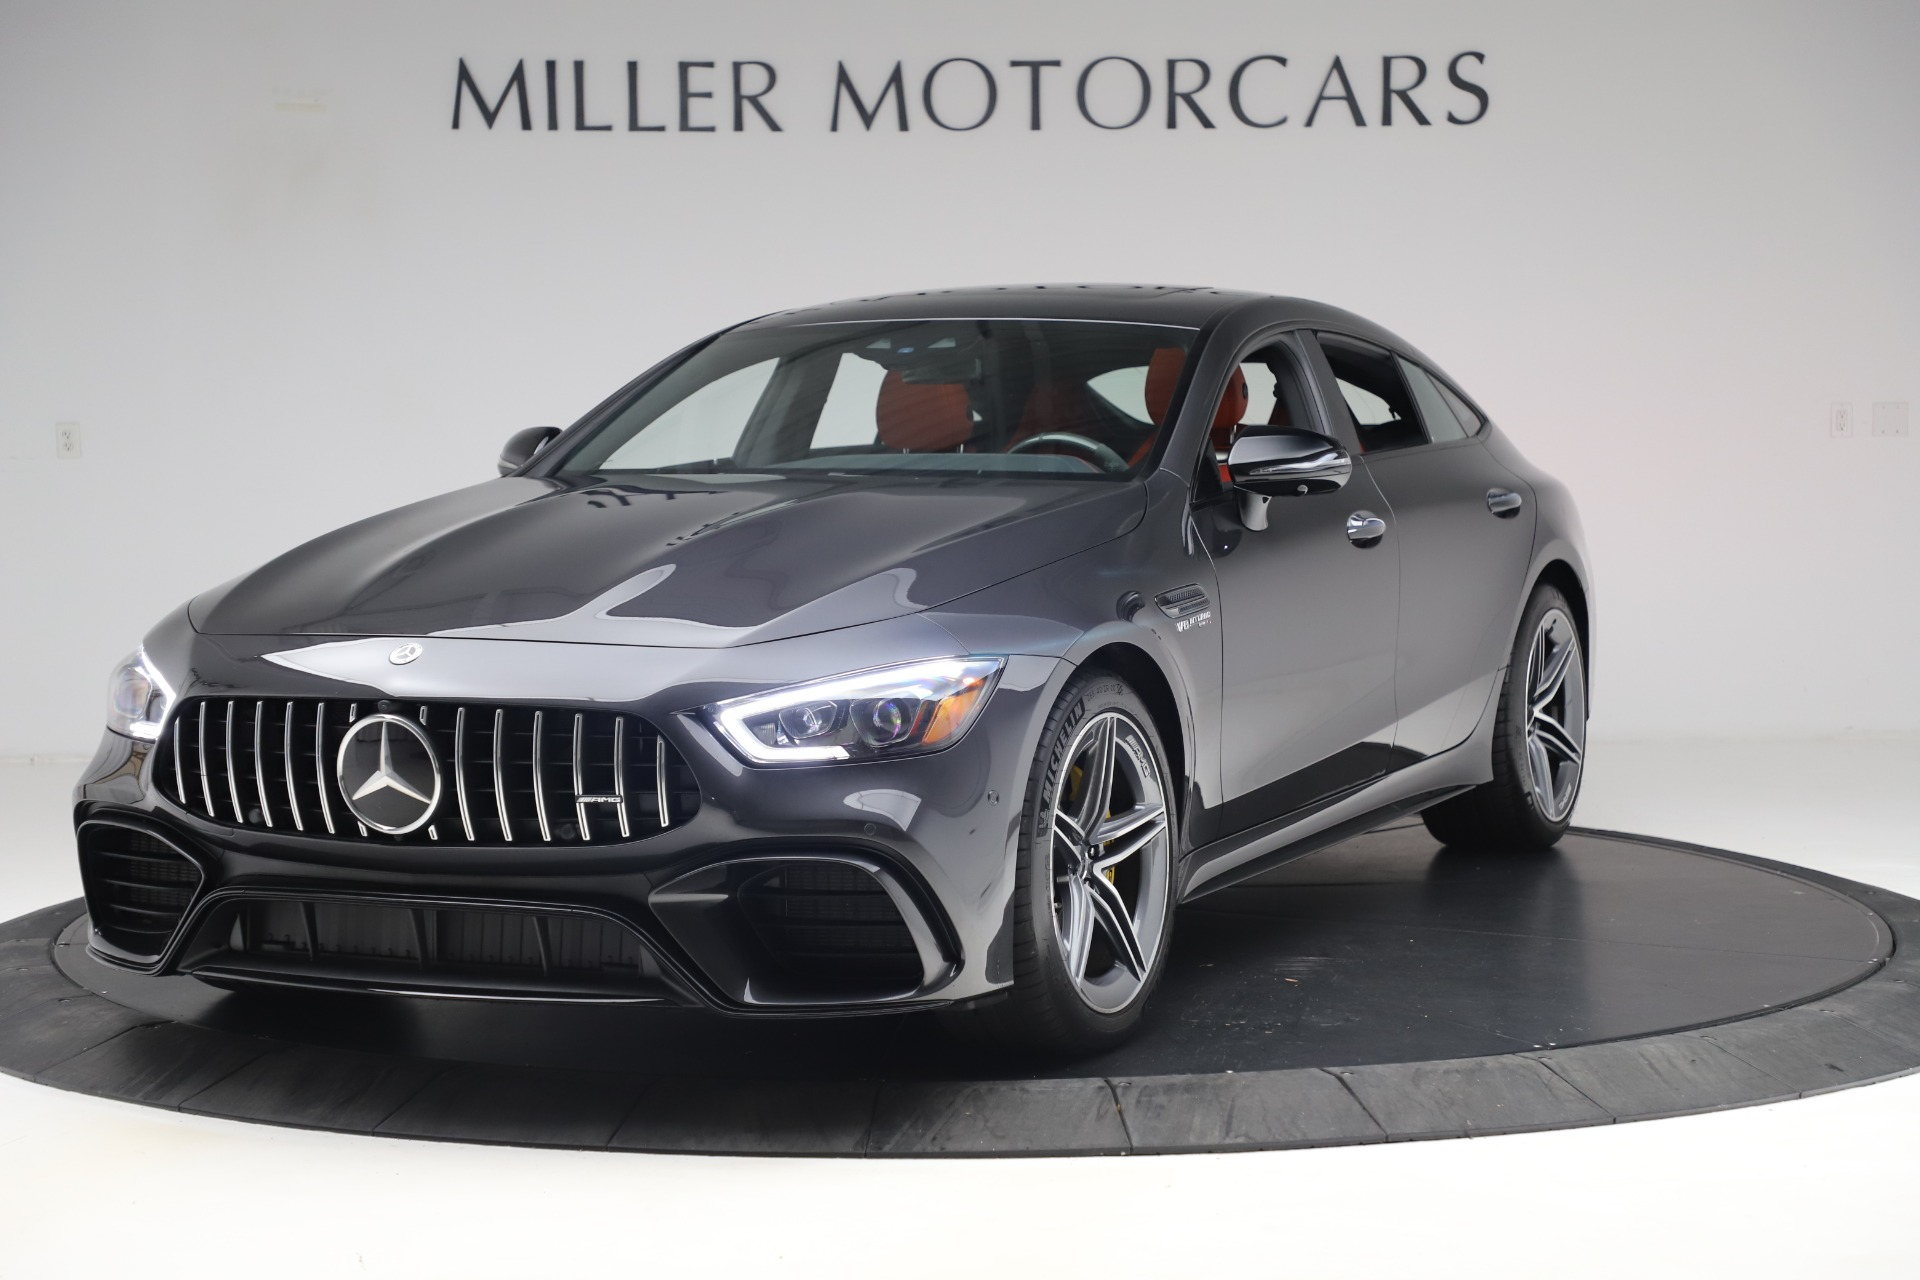 Used 2019 Mercedes-Benz AMG GT 63 S for sale Sold at Aston Martin of Greenwich in Greenwich CT 06830 1